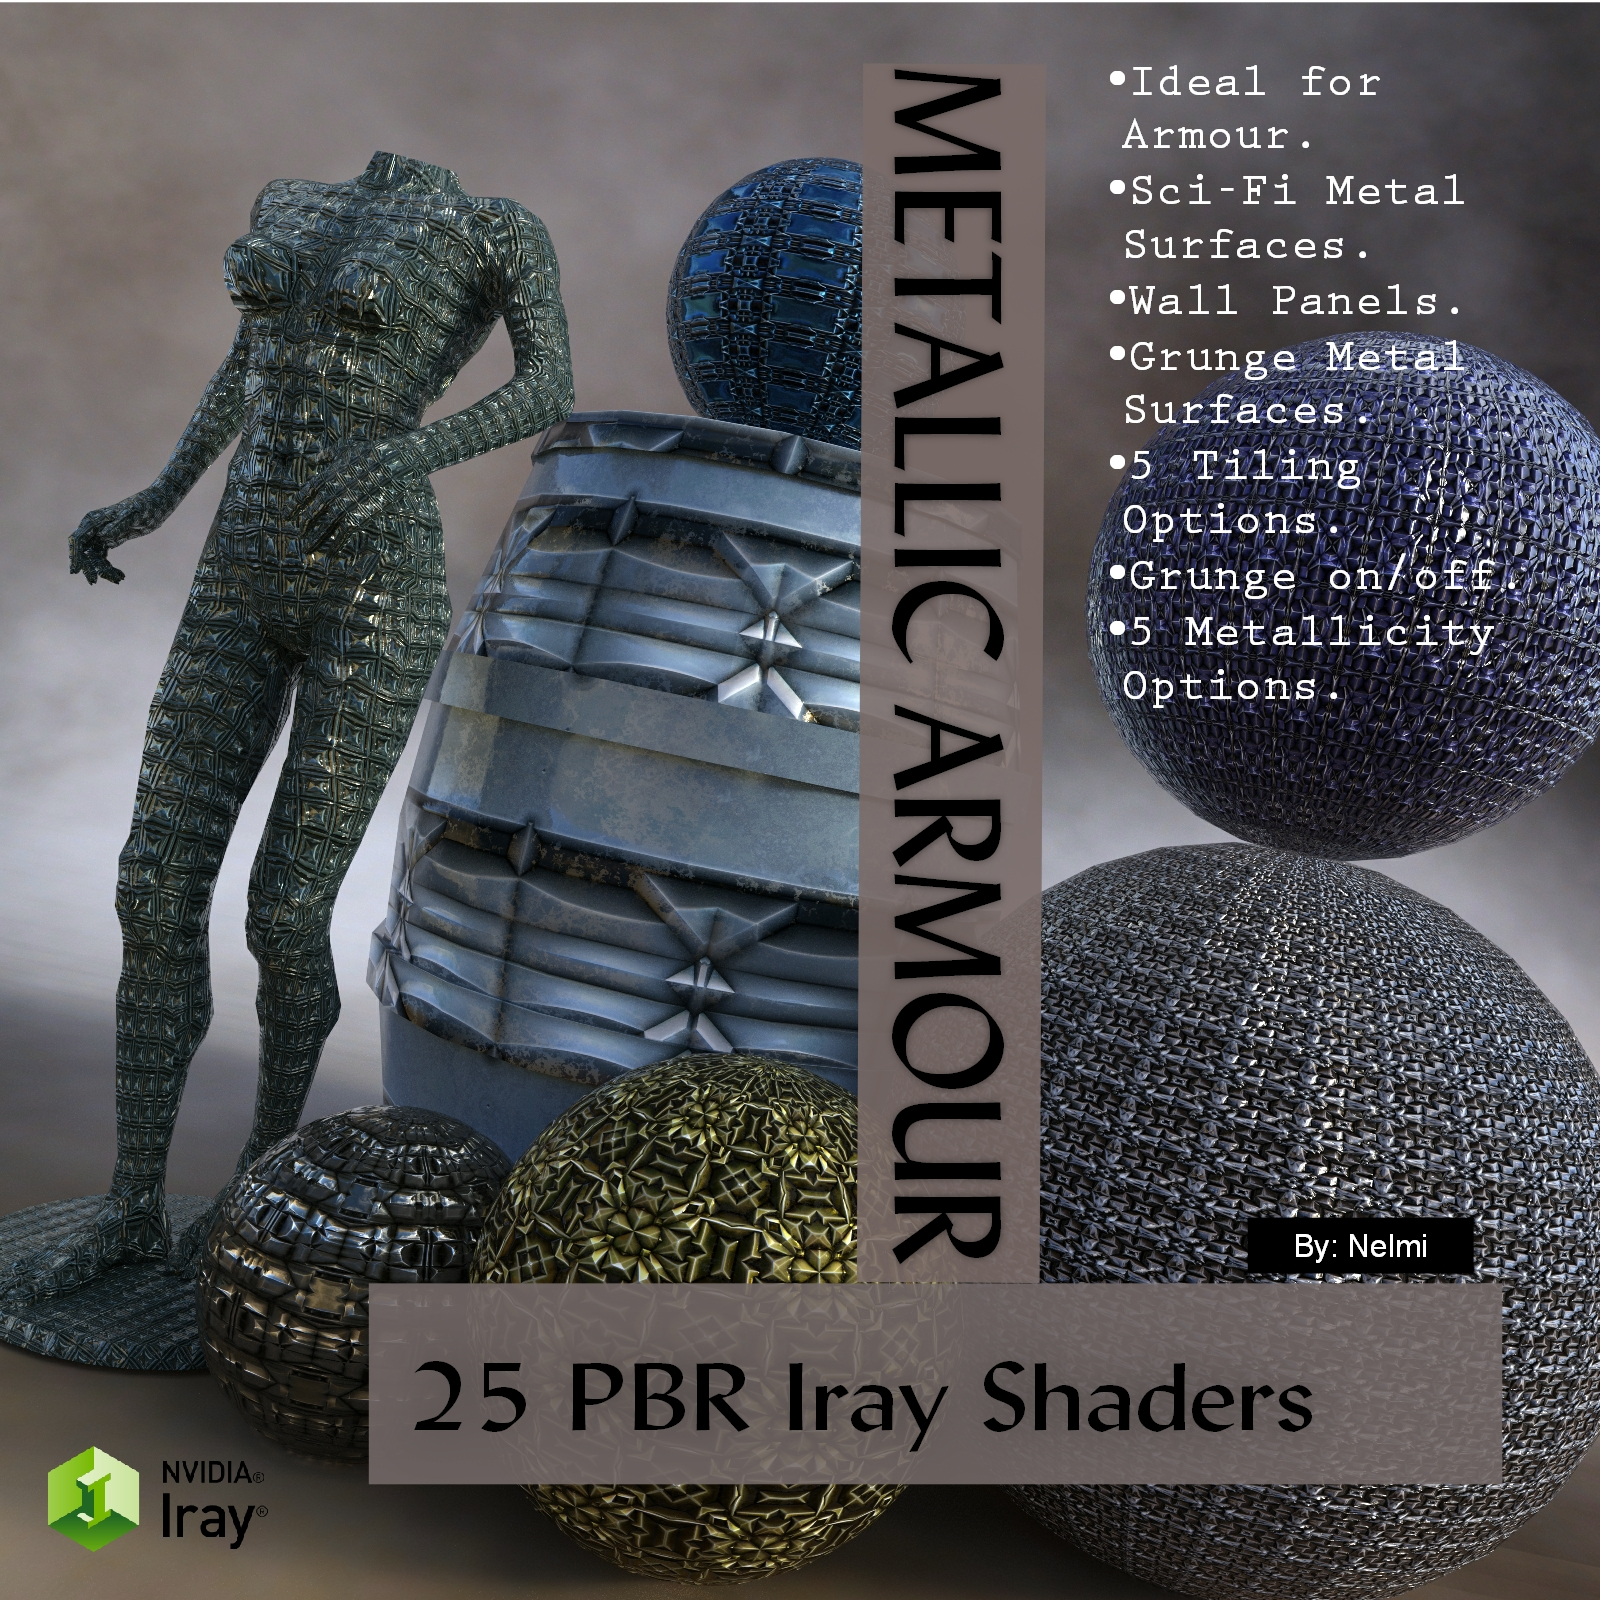 25 Metallic Armour PBR Iray Shaders for Daz Studio